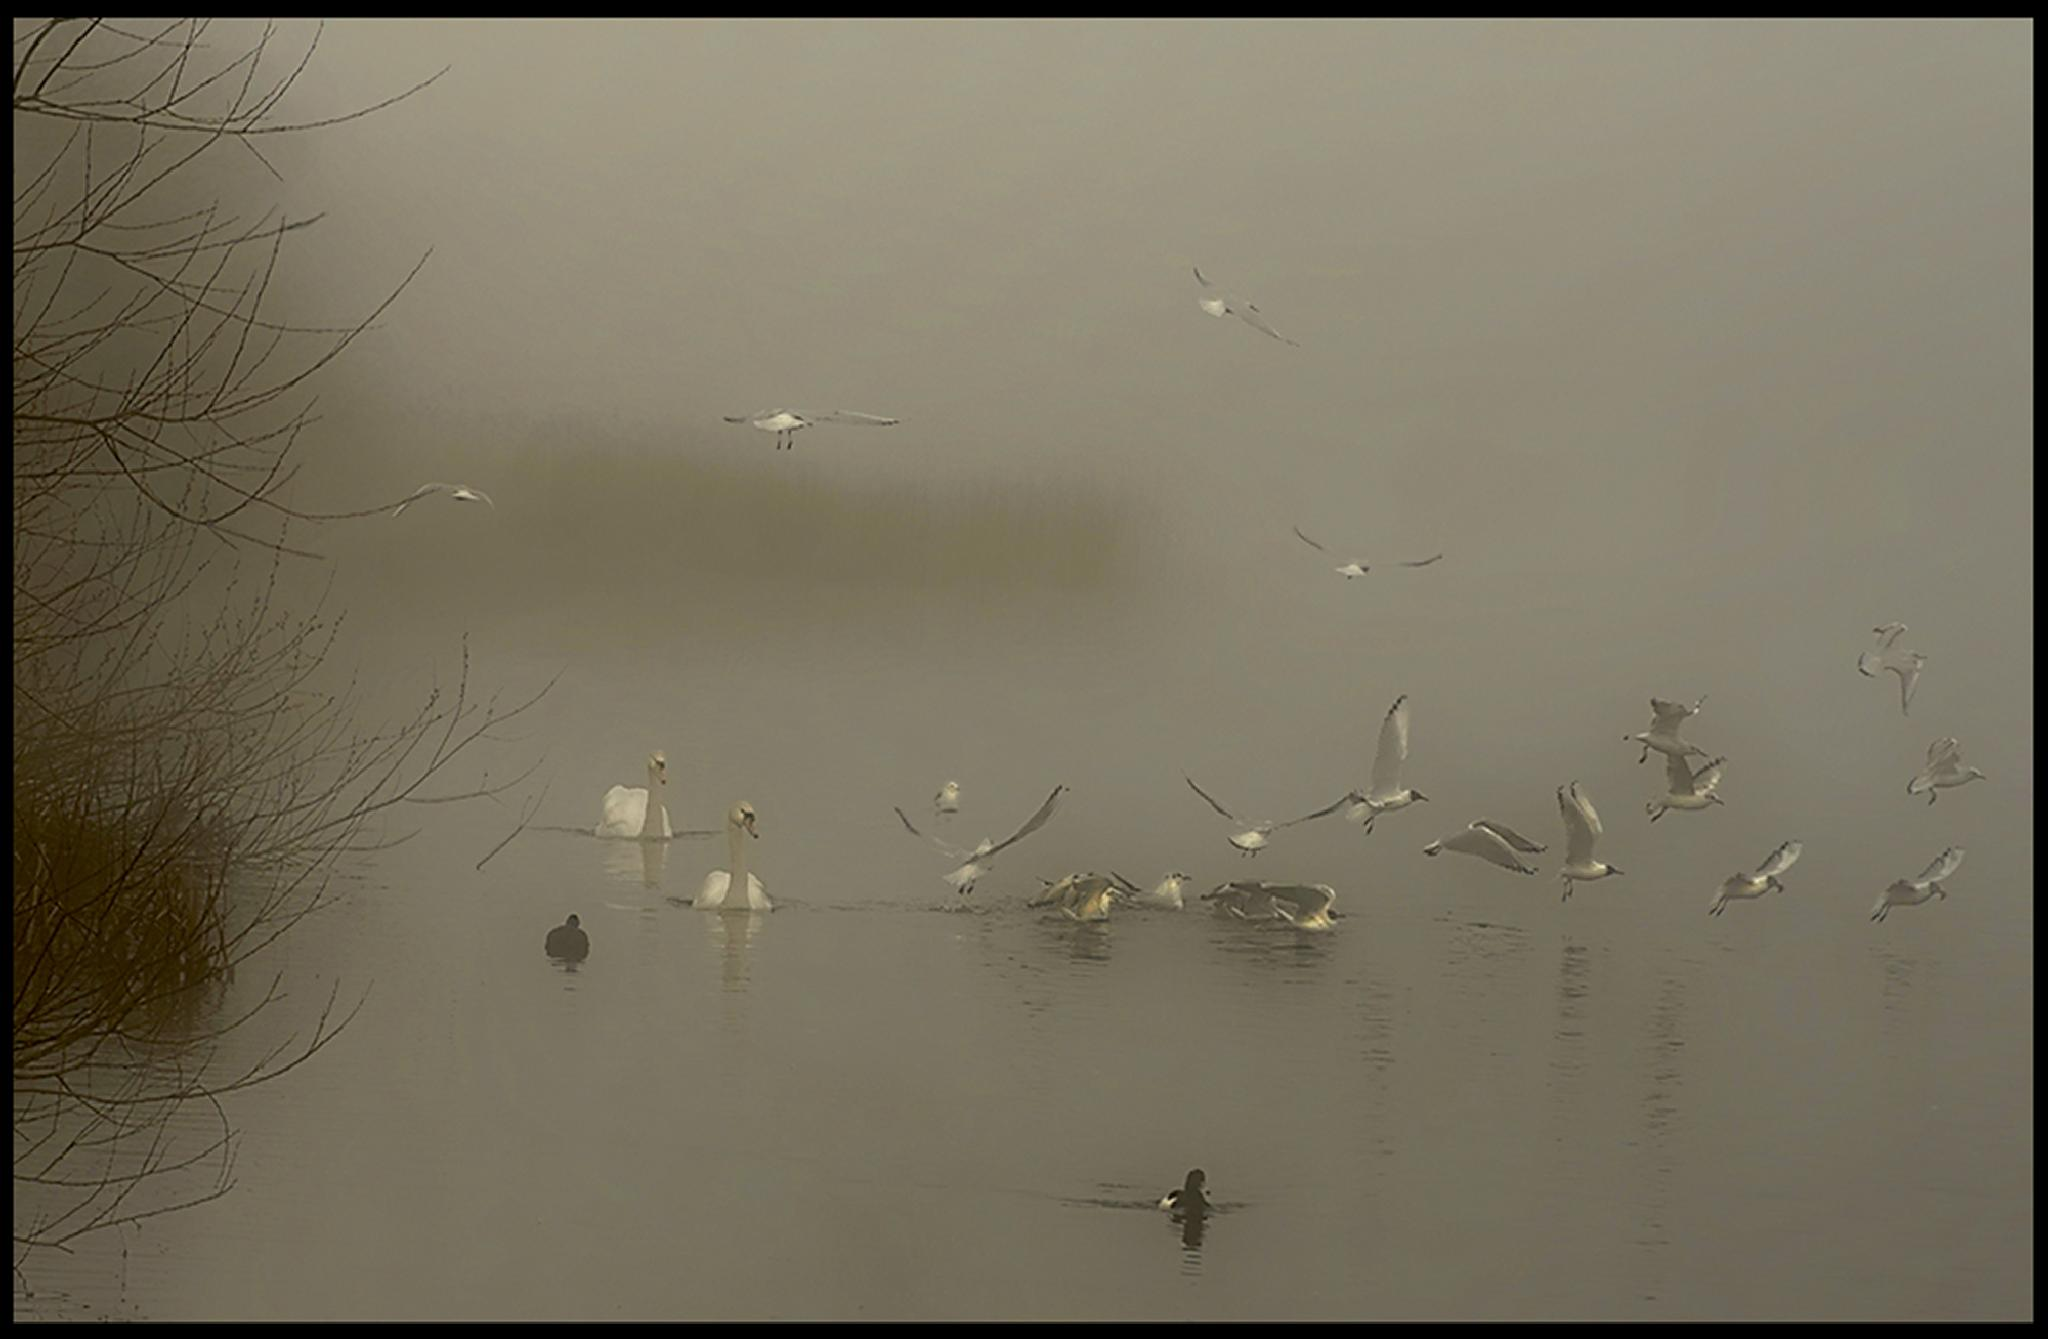 swans in the fog by angela.taylor.142035